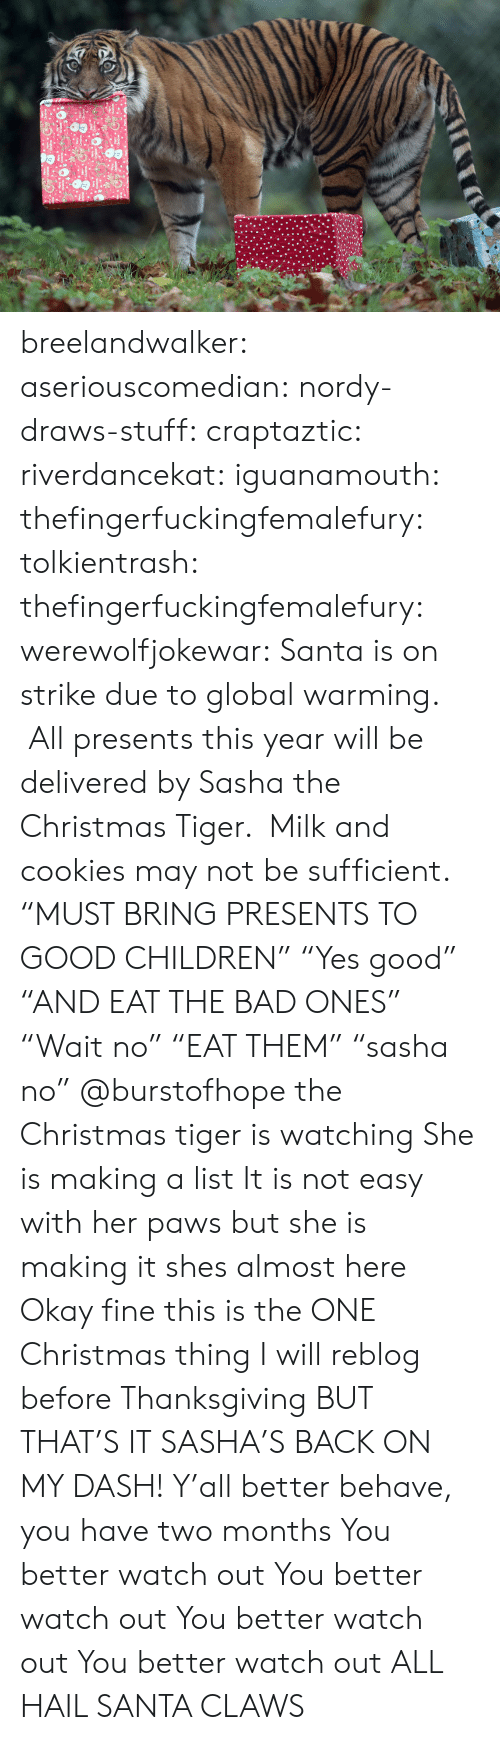 "presents: breelandwalker:  aseriouscomedian:  nordy-draws-stuff:   craptaztic:  riverdancekat:  iguanamouth:  thefingerfuckingfemalefury:  tolkientrash:  thefingerfuckingfemalefury:  werewolfjokewar:  Santa is on strike due to global warming.  All presents this year will be delivered by Sasha the Christmas Tiger.  Milk and cookies may not be sufficient.  ""MUST BRING PRESENTS TO GOOD CHILDREN"" ""Yes good"" ""AND EAT THE BAD ONES""  ""Wait no"" ""EAT THEM"" ""sasha no""   @burstofhope the Christmas tiger is watching  She is making a list  It is not easy with her paws but she is making it   shes almost here   Okay fine this is the ONE Christmas thing I will reblog before Thanksgiving BUT THAT'S IT  SASHA'S BACK ON MY DASH!  Y'all better behave, you have two months   You better watch out You better watch out You better watch out You better watch out  ALL HAIL SANTA CLAWS"